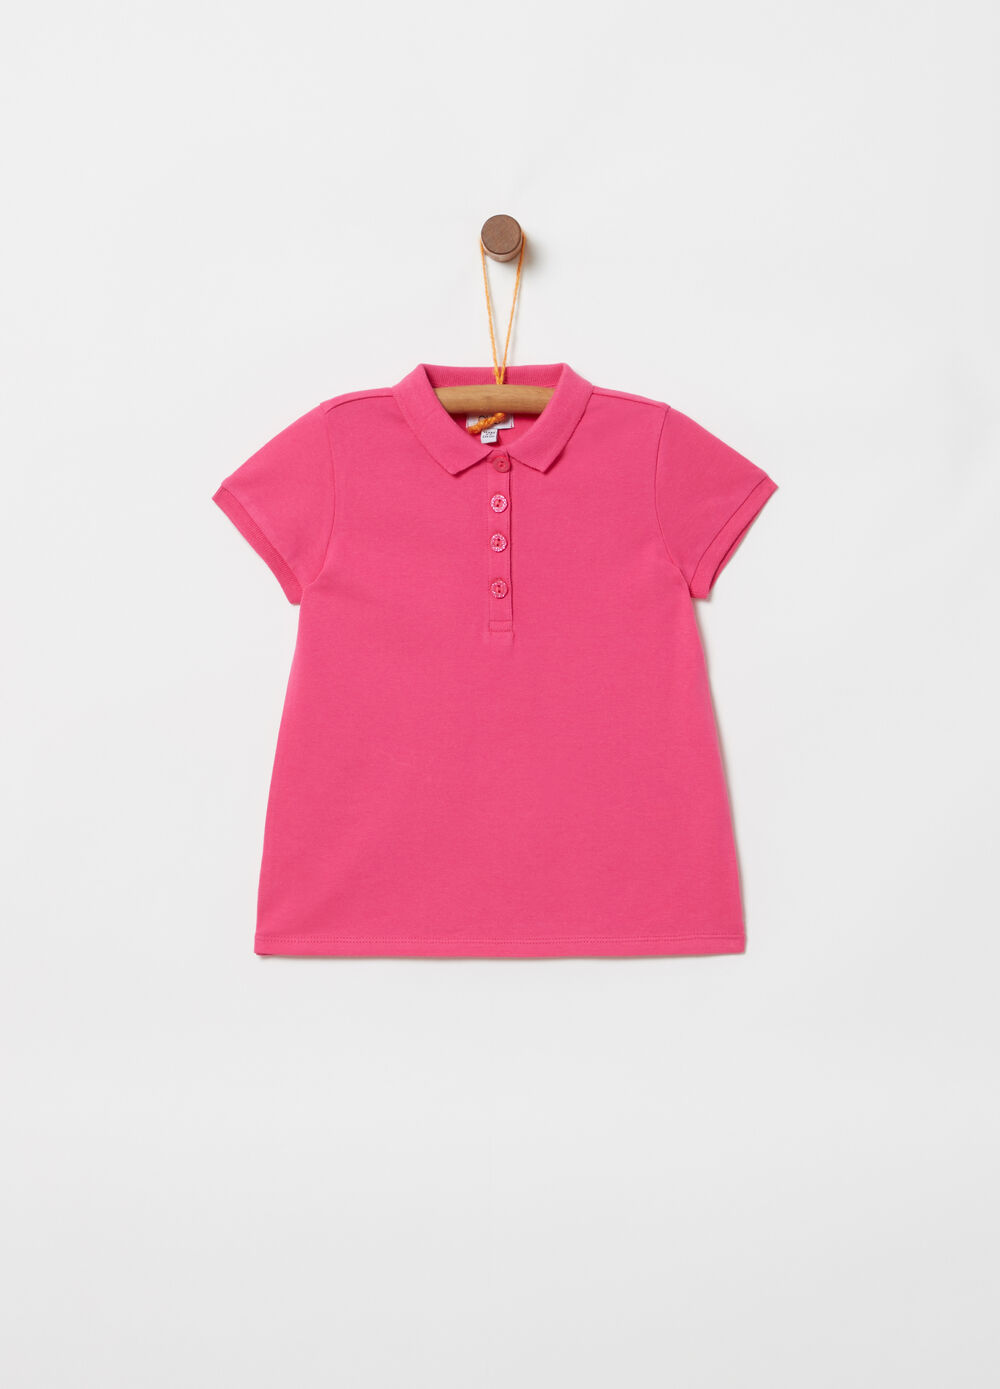 Stretch piquet polo shirt with bluff collar